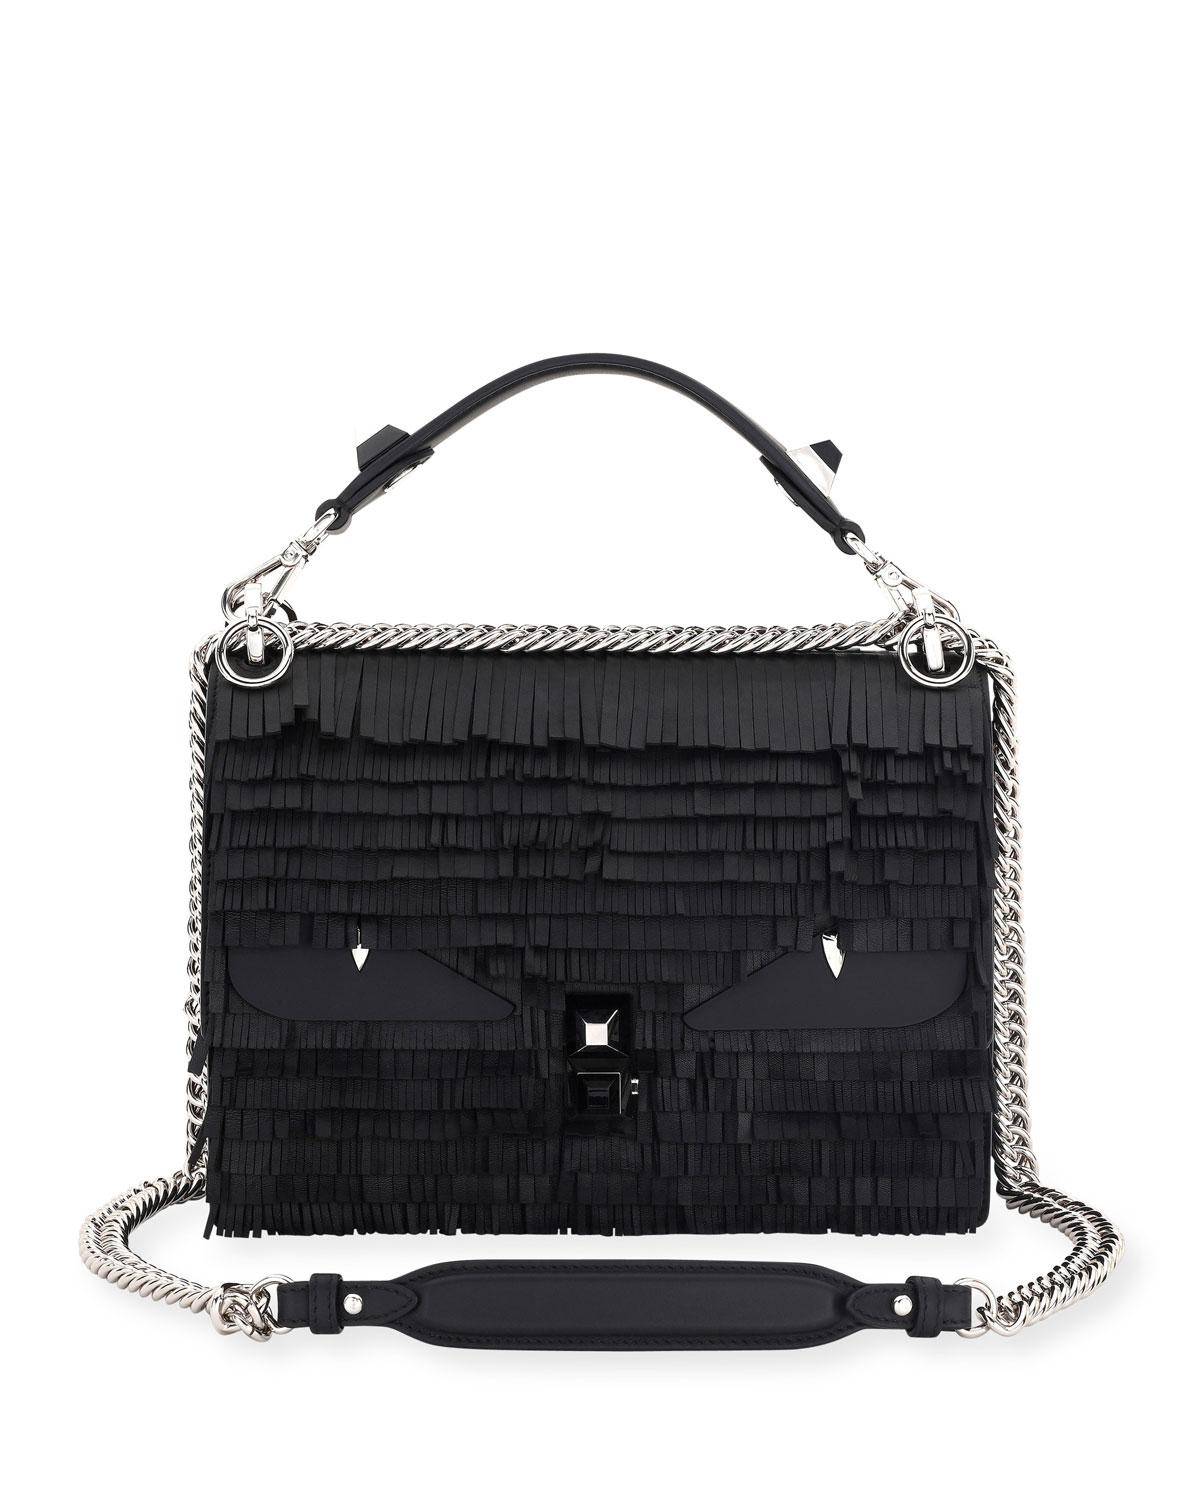 6f527ba446c0 Lyst - Fendi Kan I Fringe Monster Shoulder Bag in Black